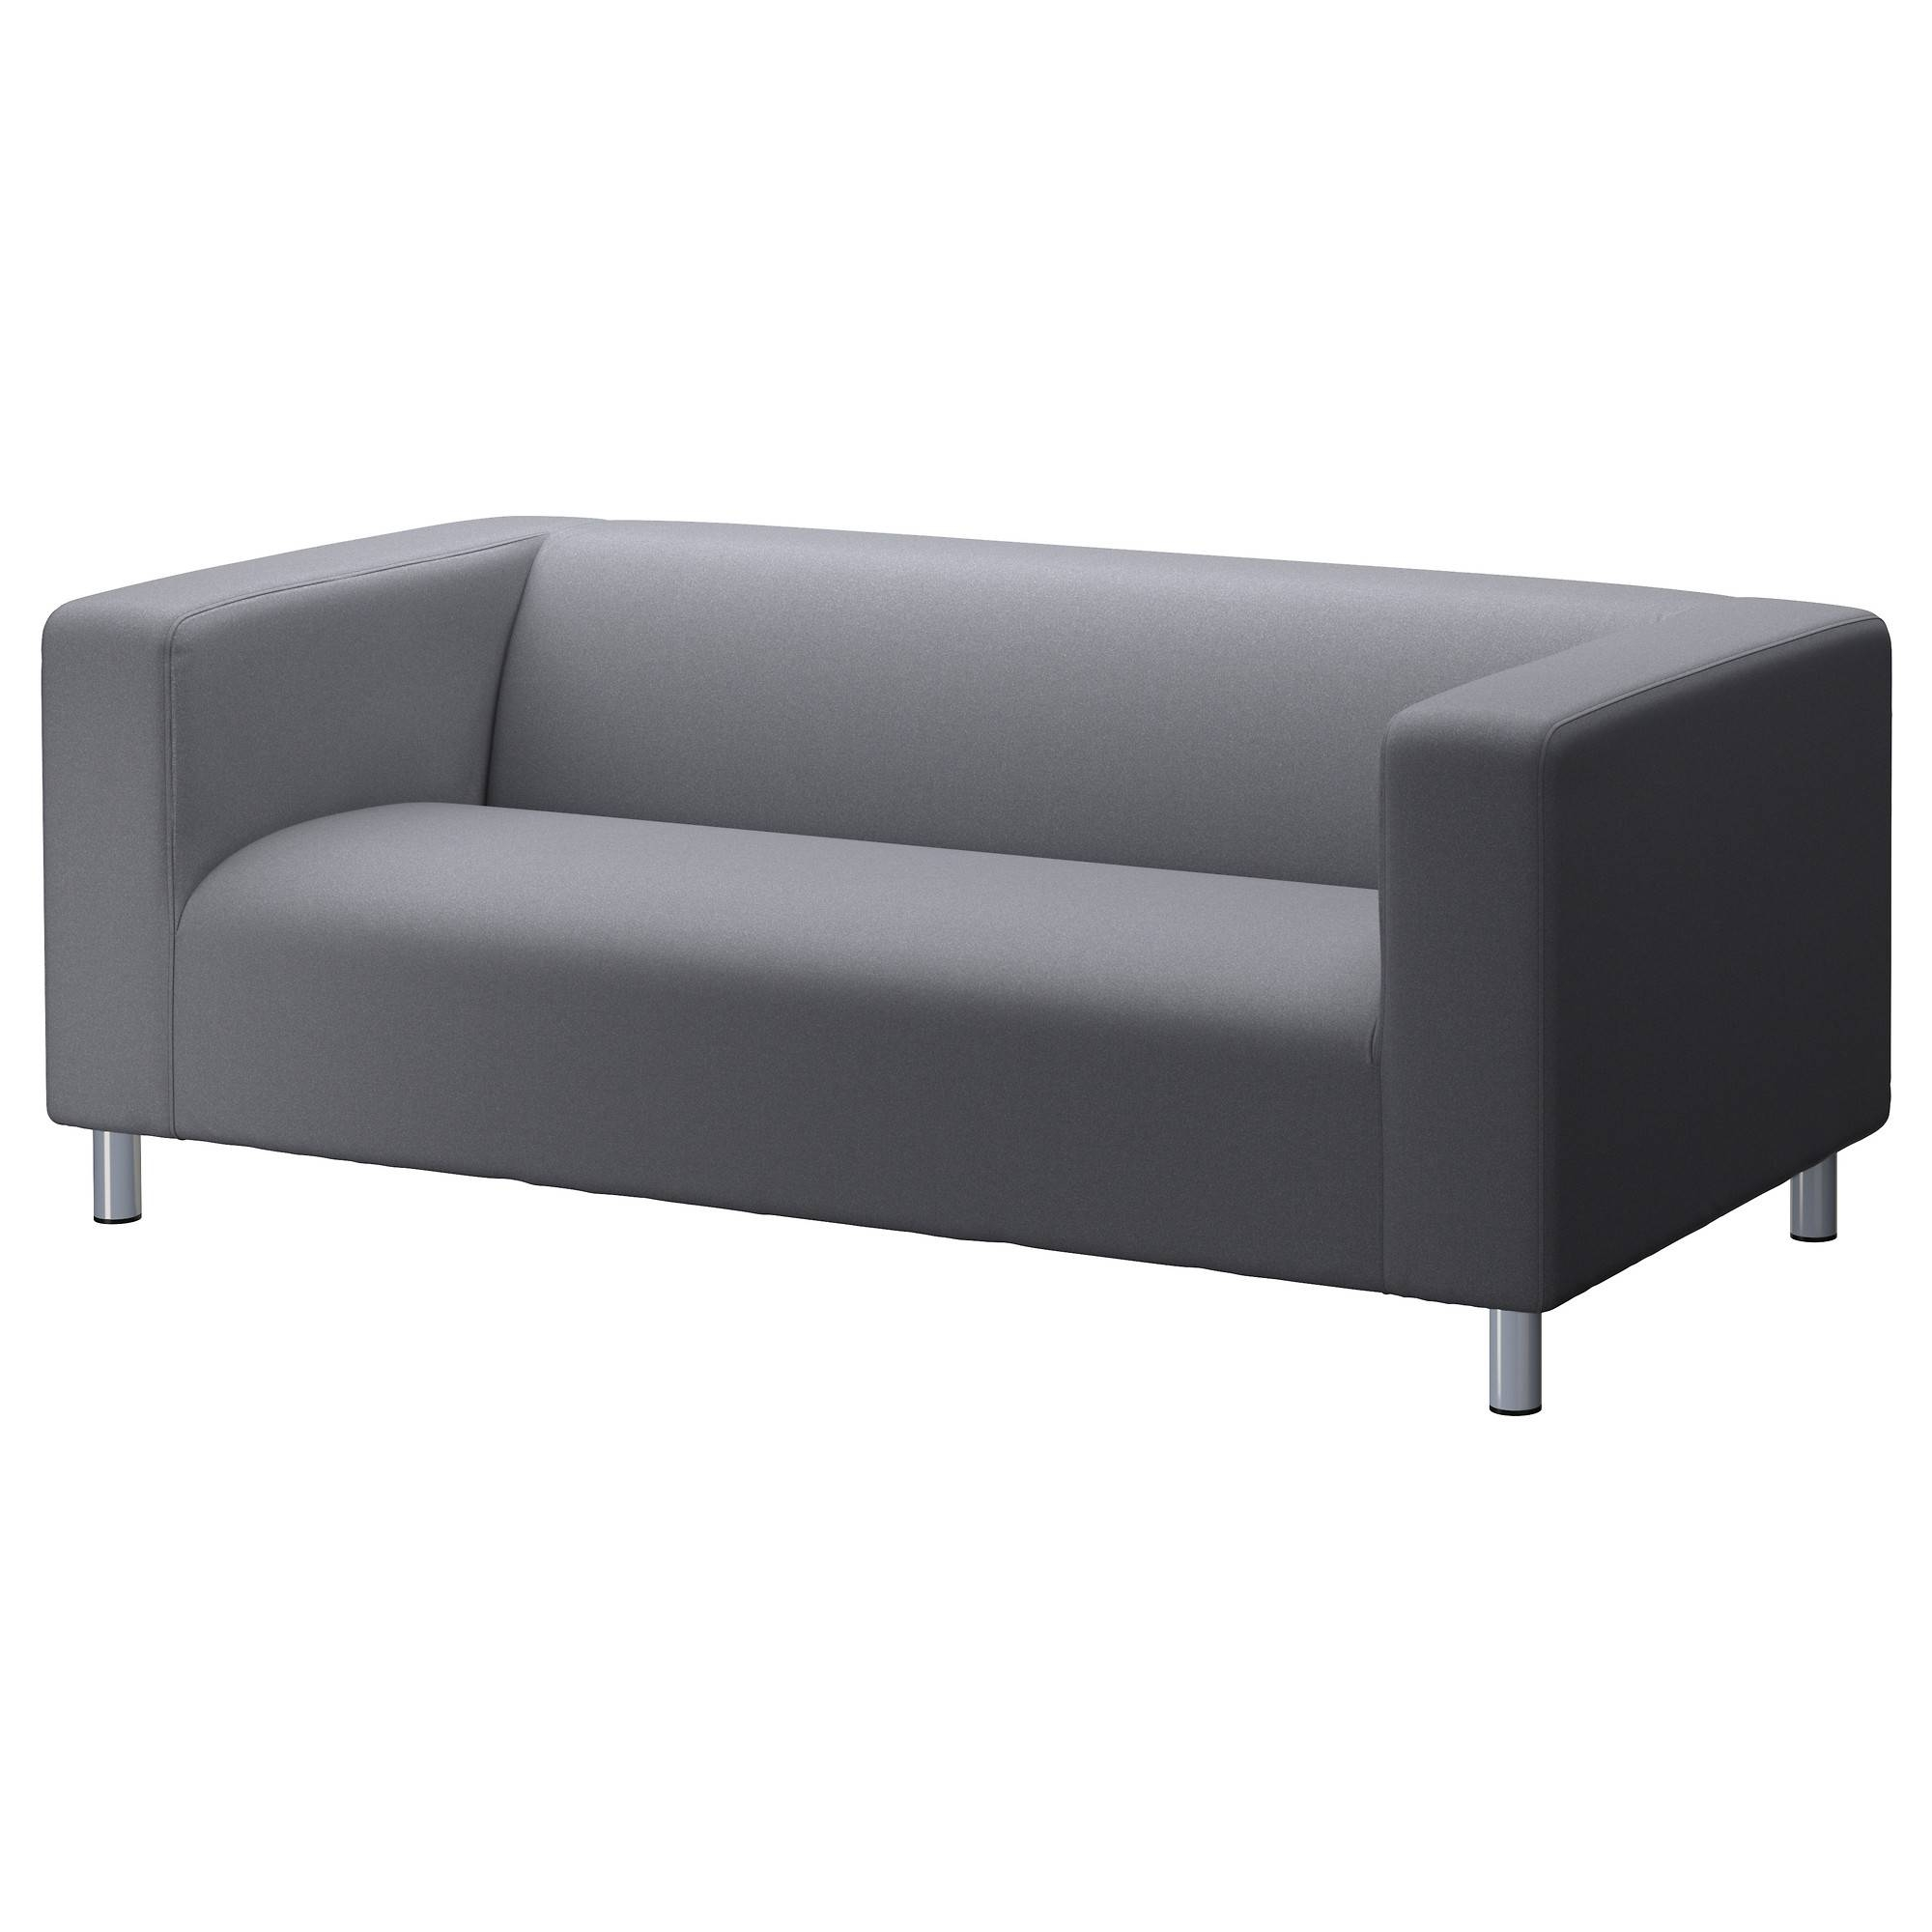 Klippan Two-Seat Sofa Flackarp Grey - Ikea with regard to Two Seater Sofas (Image 16 of 30)